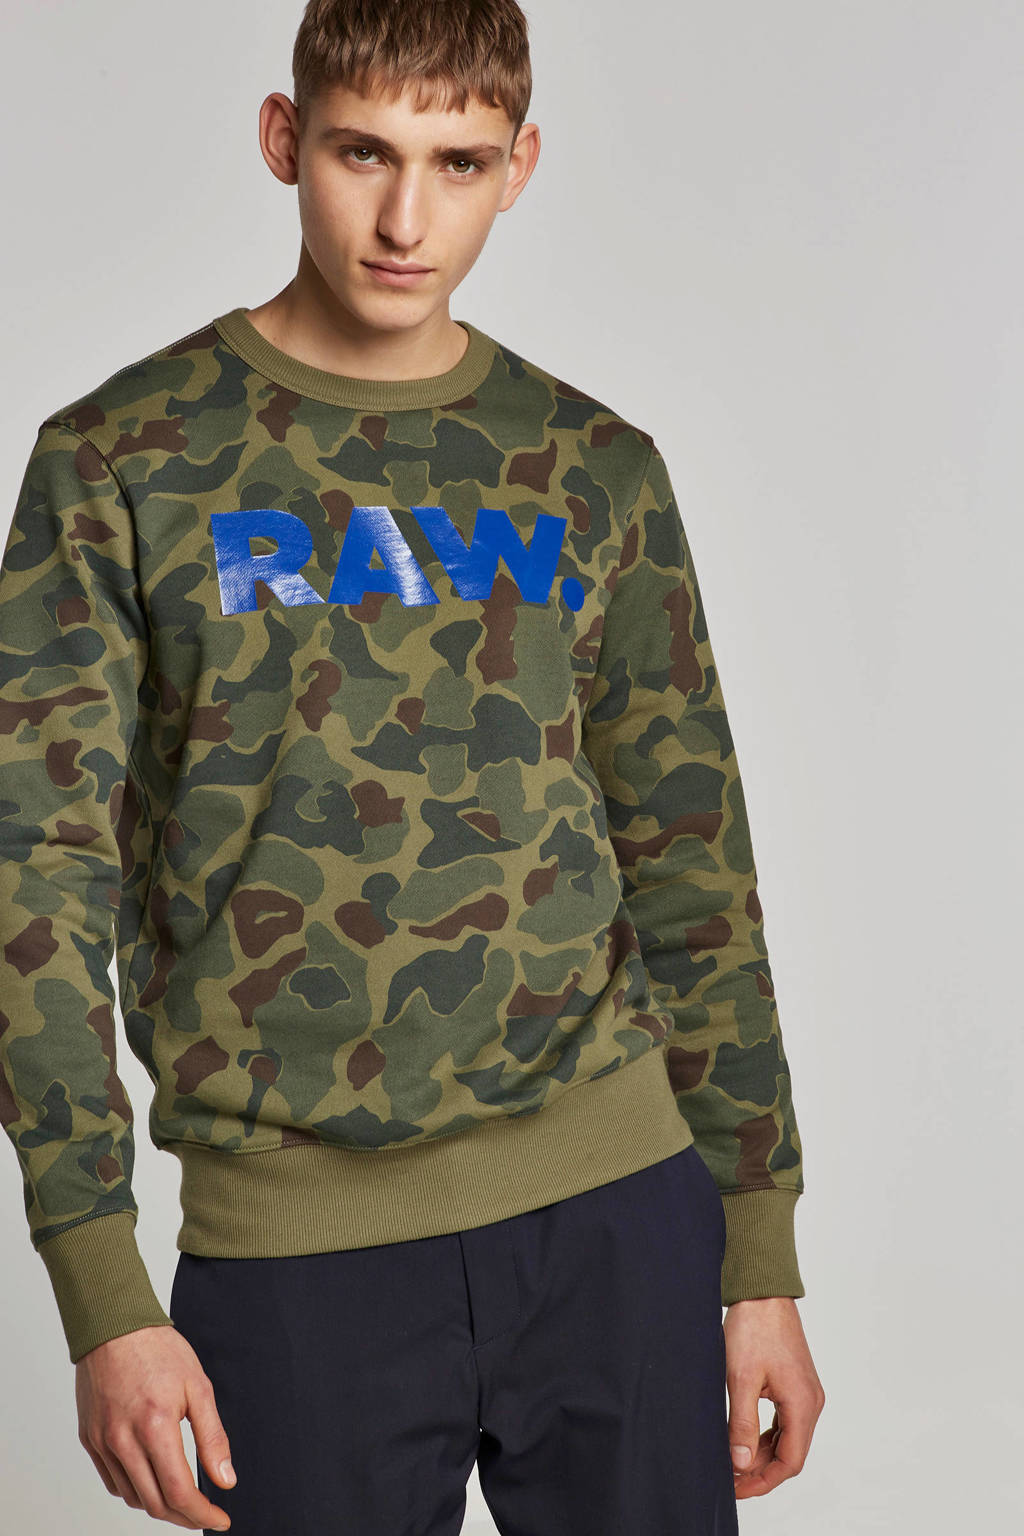 G-Star RAW sweater Zeabel, Groen